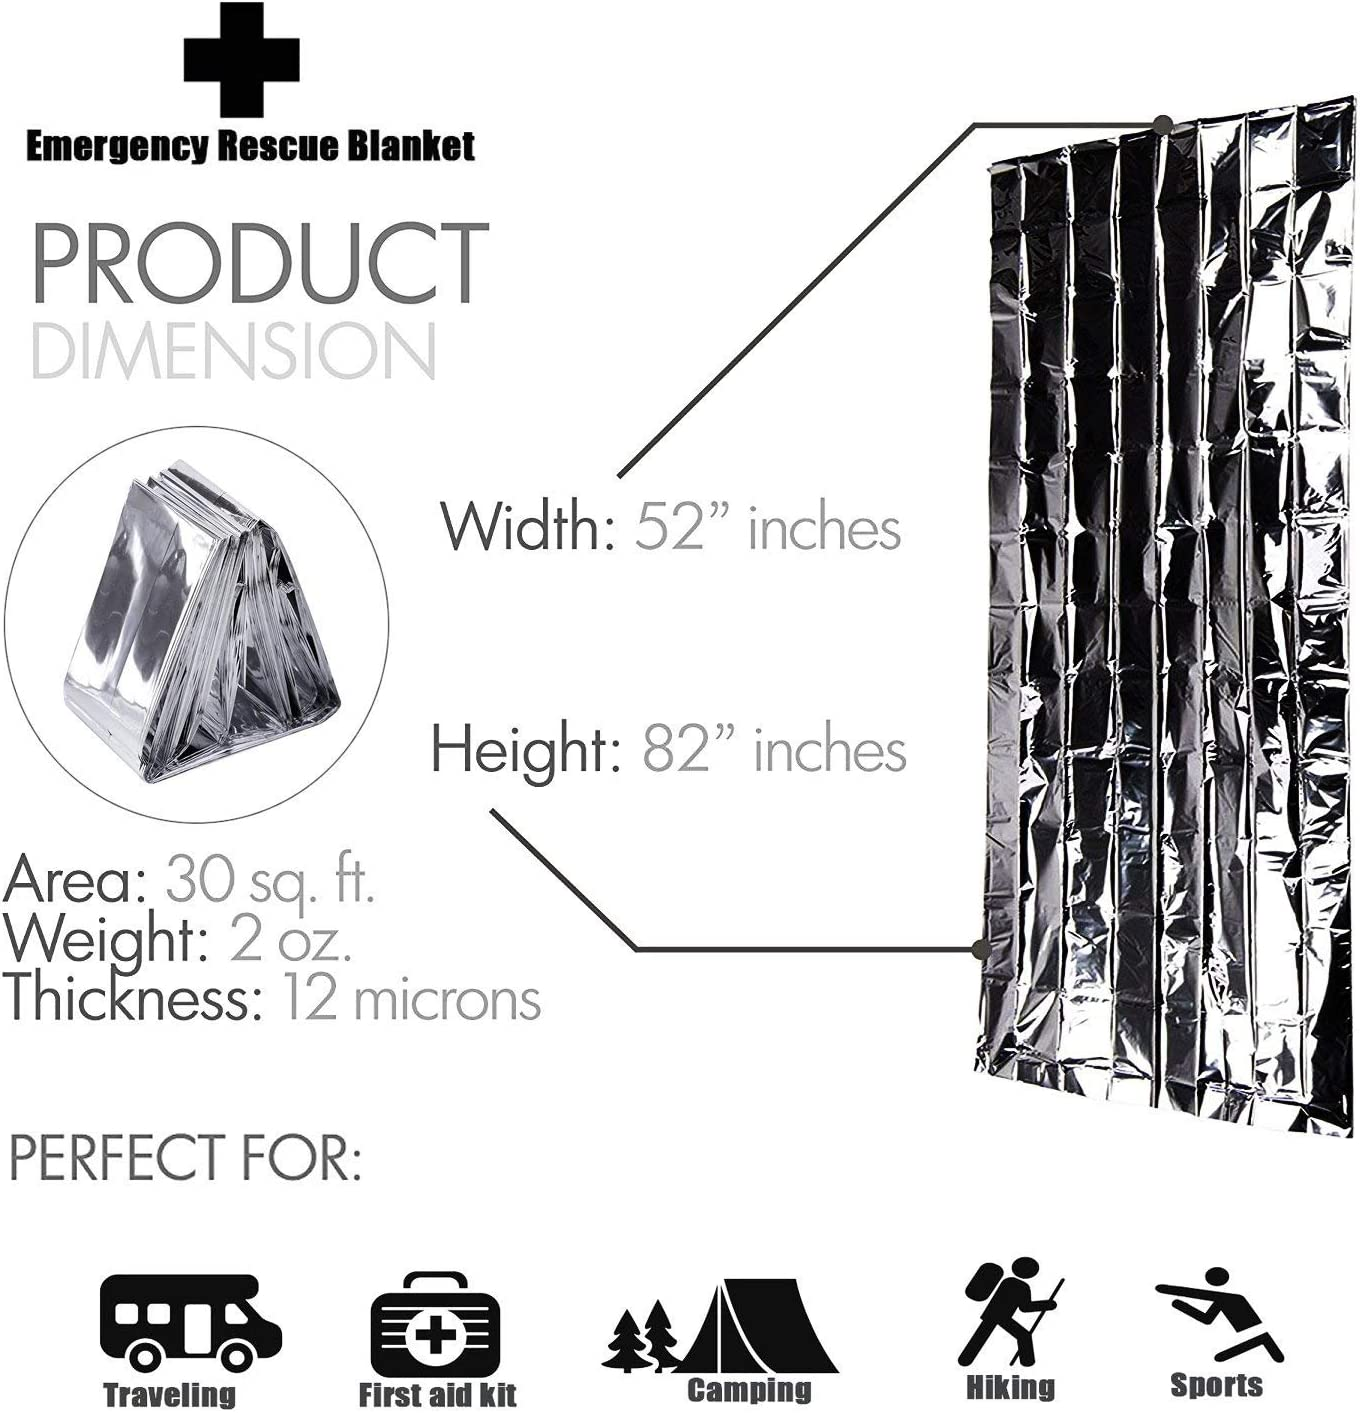 General Medi Emergency Blanket (12-Pack),Emergency Foil Blanket– Perfect for Outdoors, Hiking, Survival, Marathons or First Aid: Home & Kitchen